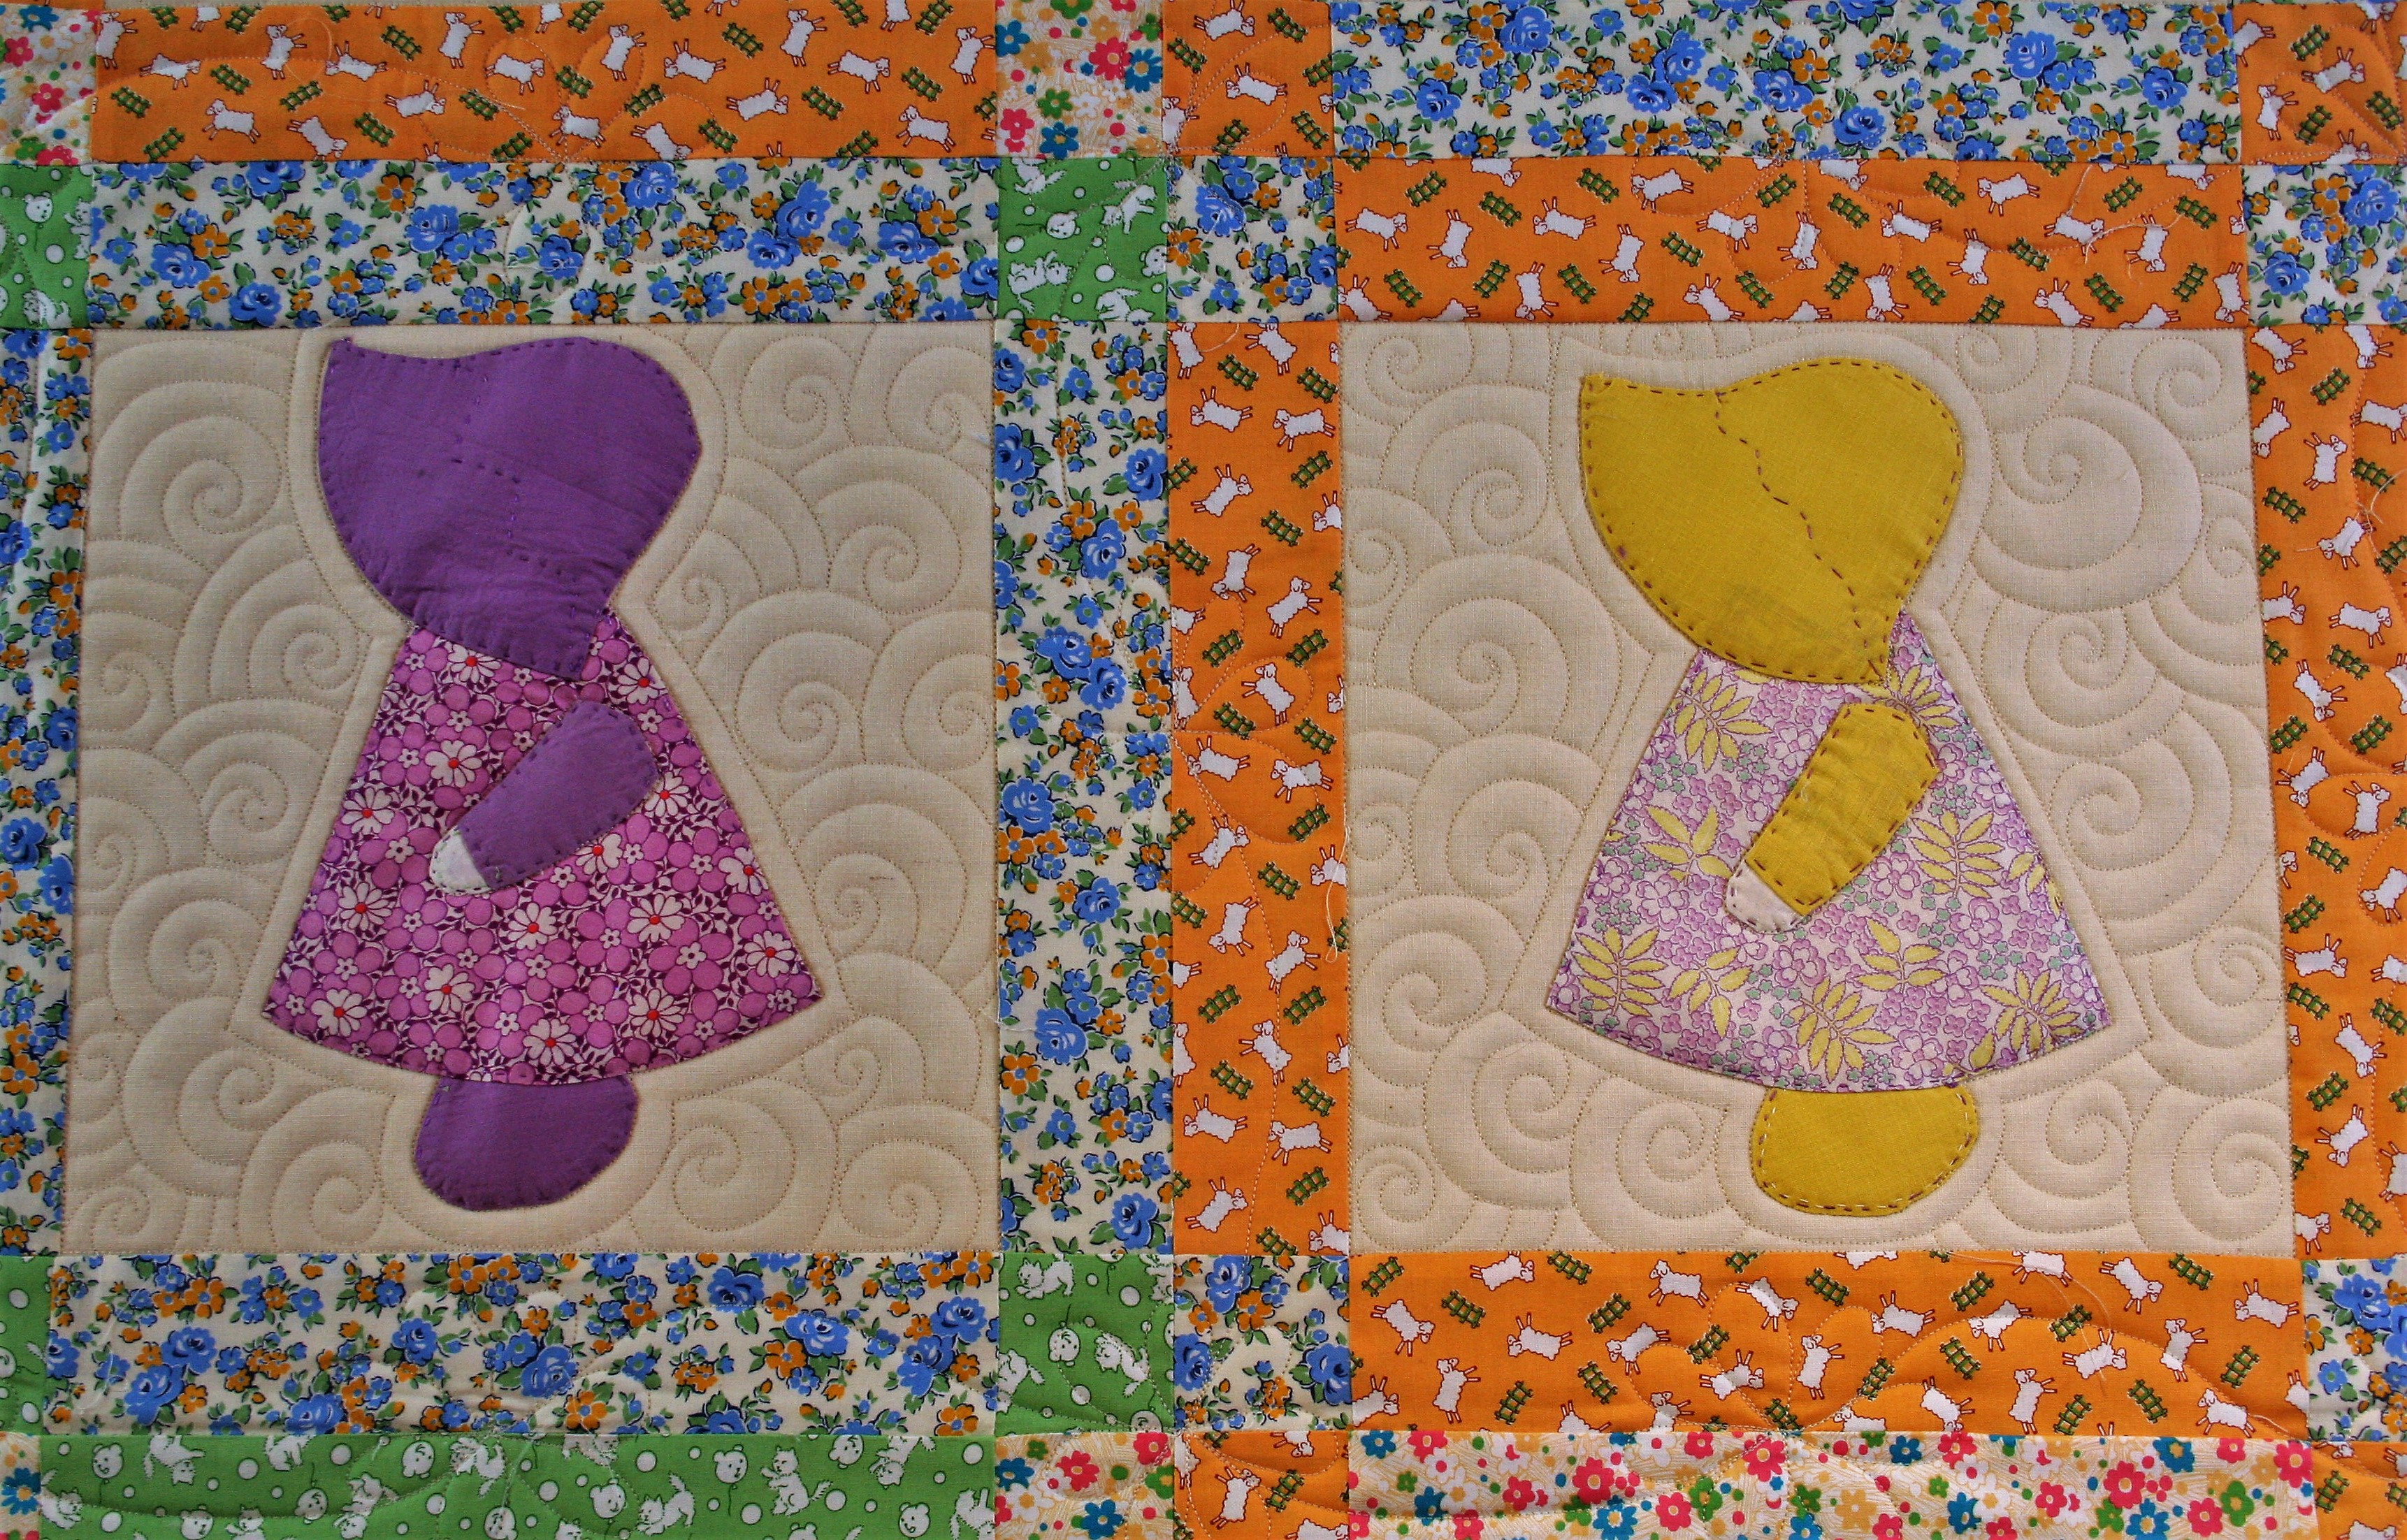 Sunbonnet Sue and Swirls (close up 2)